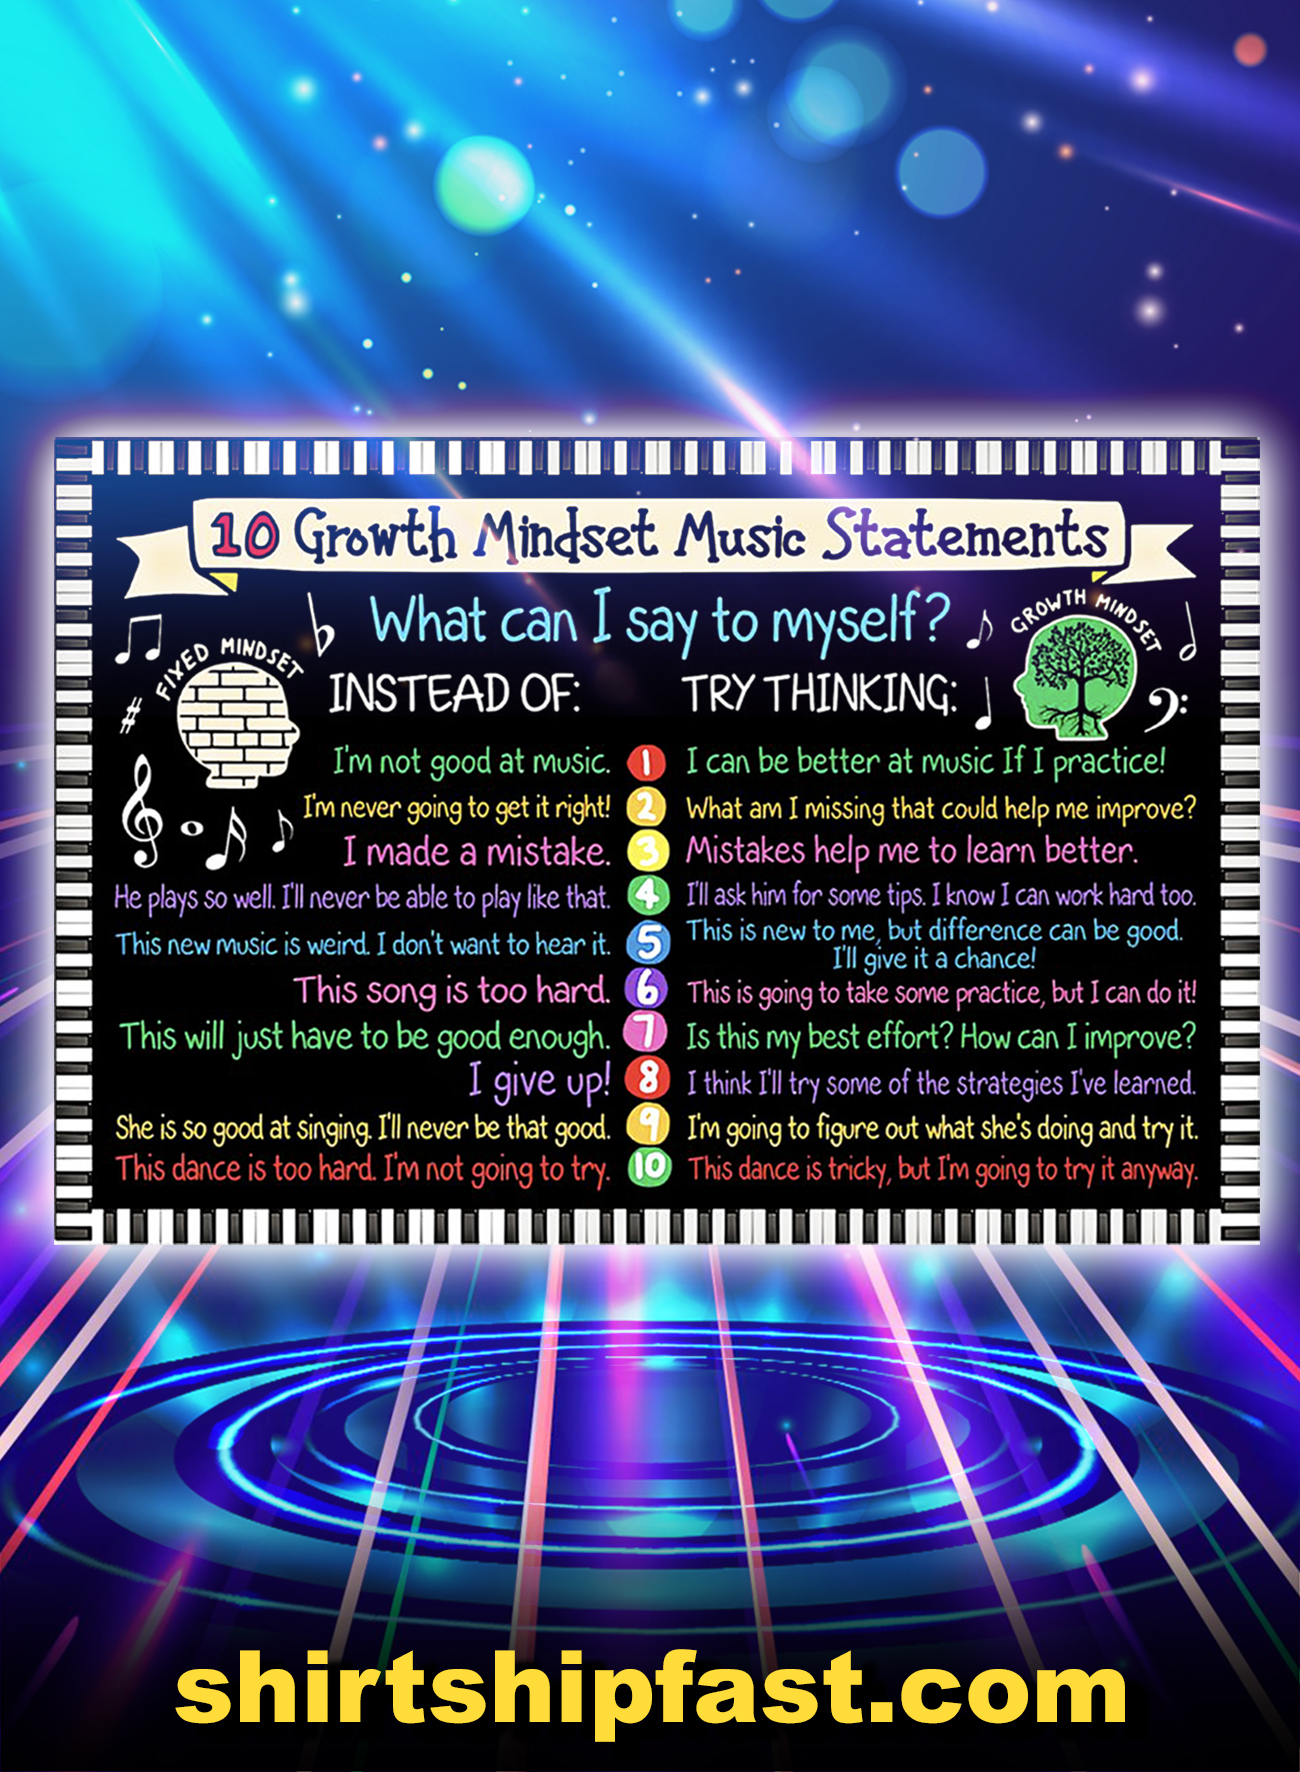 10 growth mindset music statements poster - A1